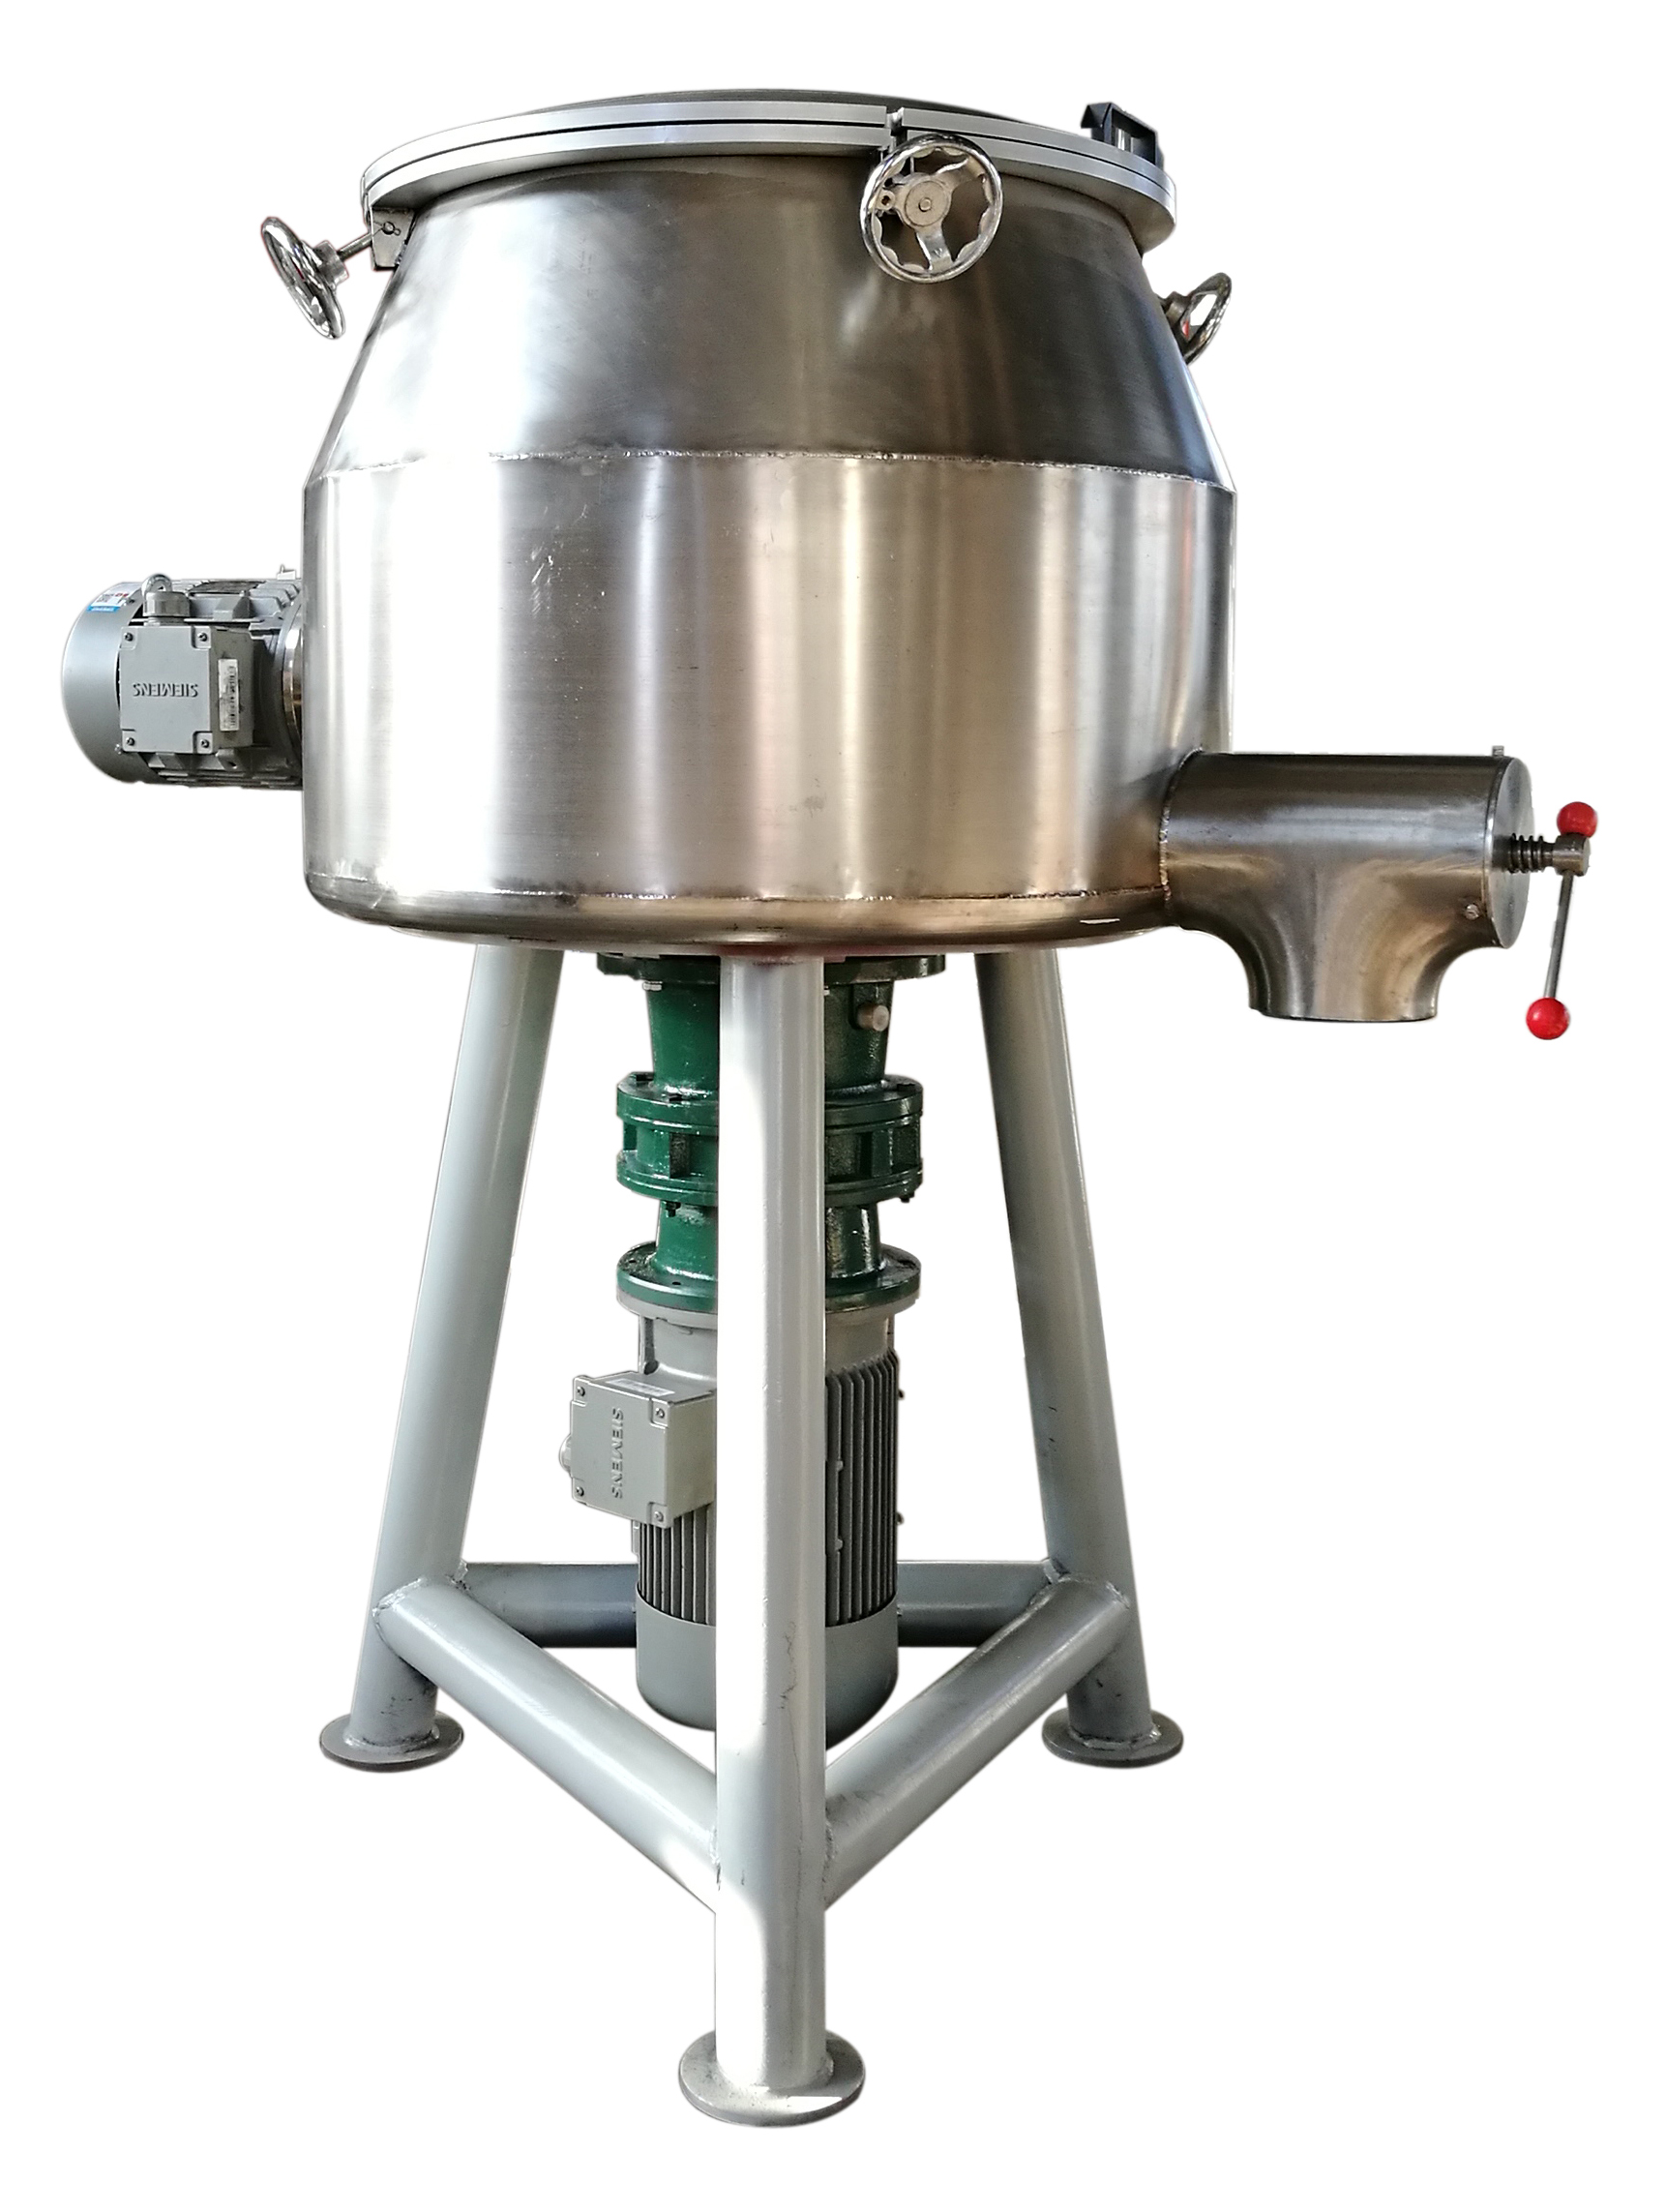 Vertical Powder Coating Powder Coating High Speed Mixer